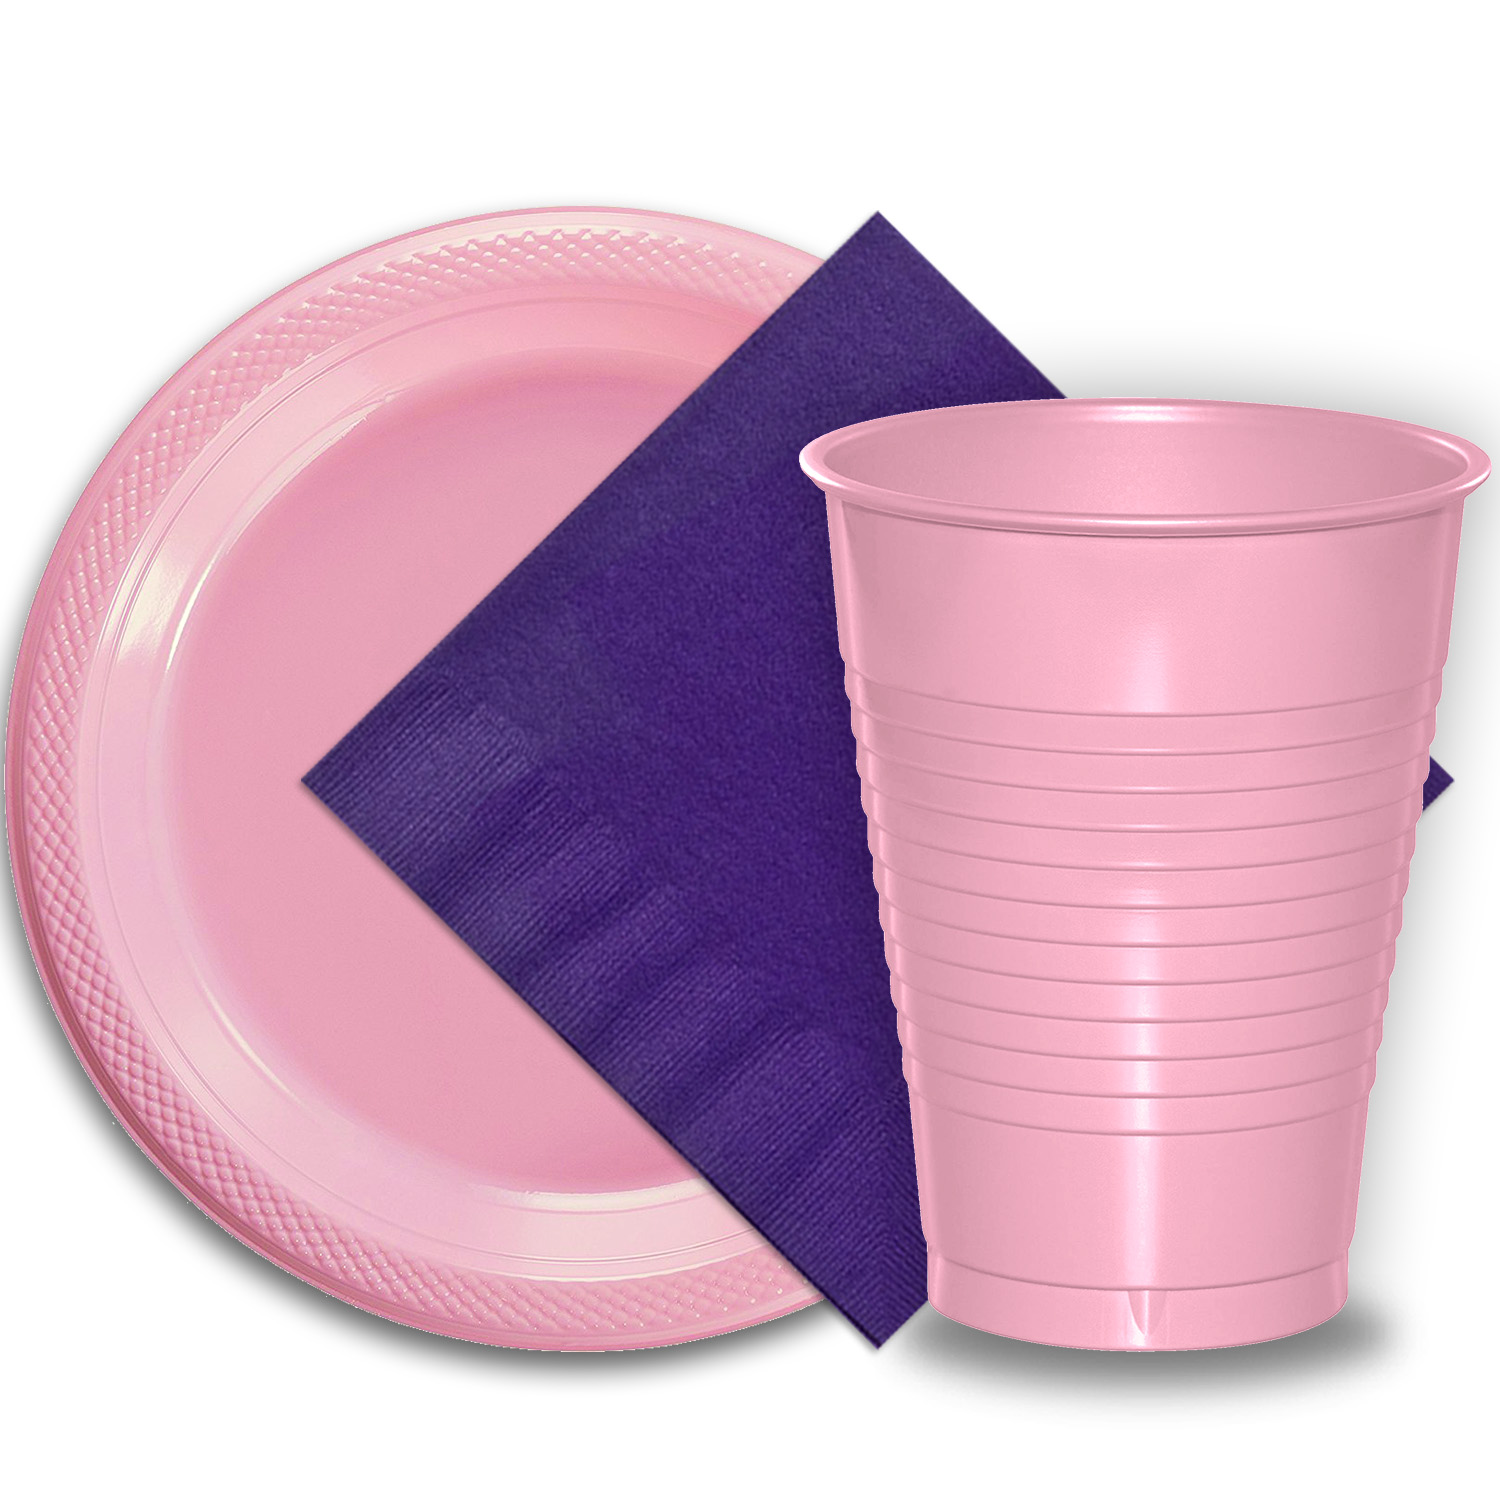 """50 Pink Plastic Plates (9""""), 50 Pink Plastic Cups (12 oz.), and 50 Purple Paper Napkins, Dazzelling Colored Disposable Party Supplies Tableware Set for Fifty Guests."""